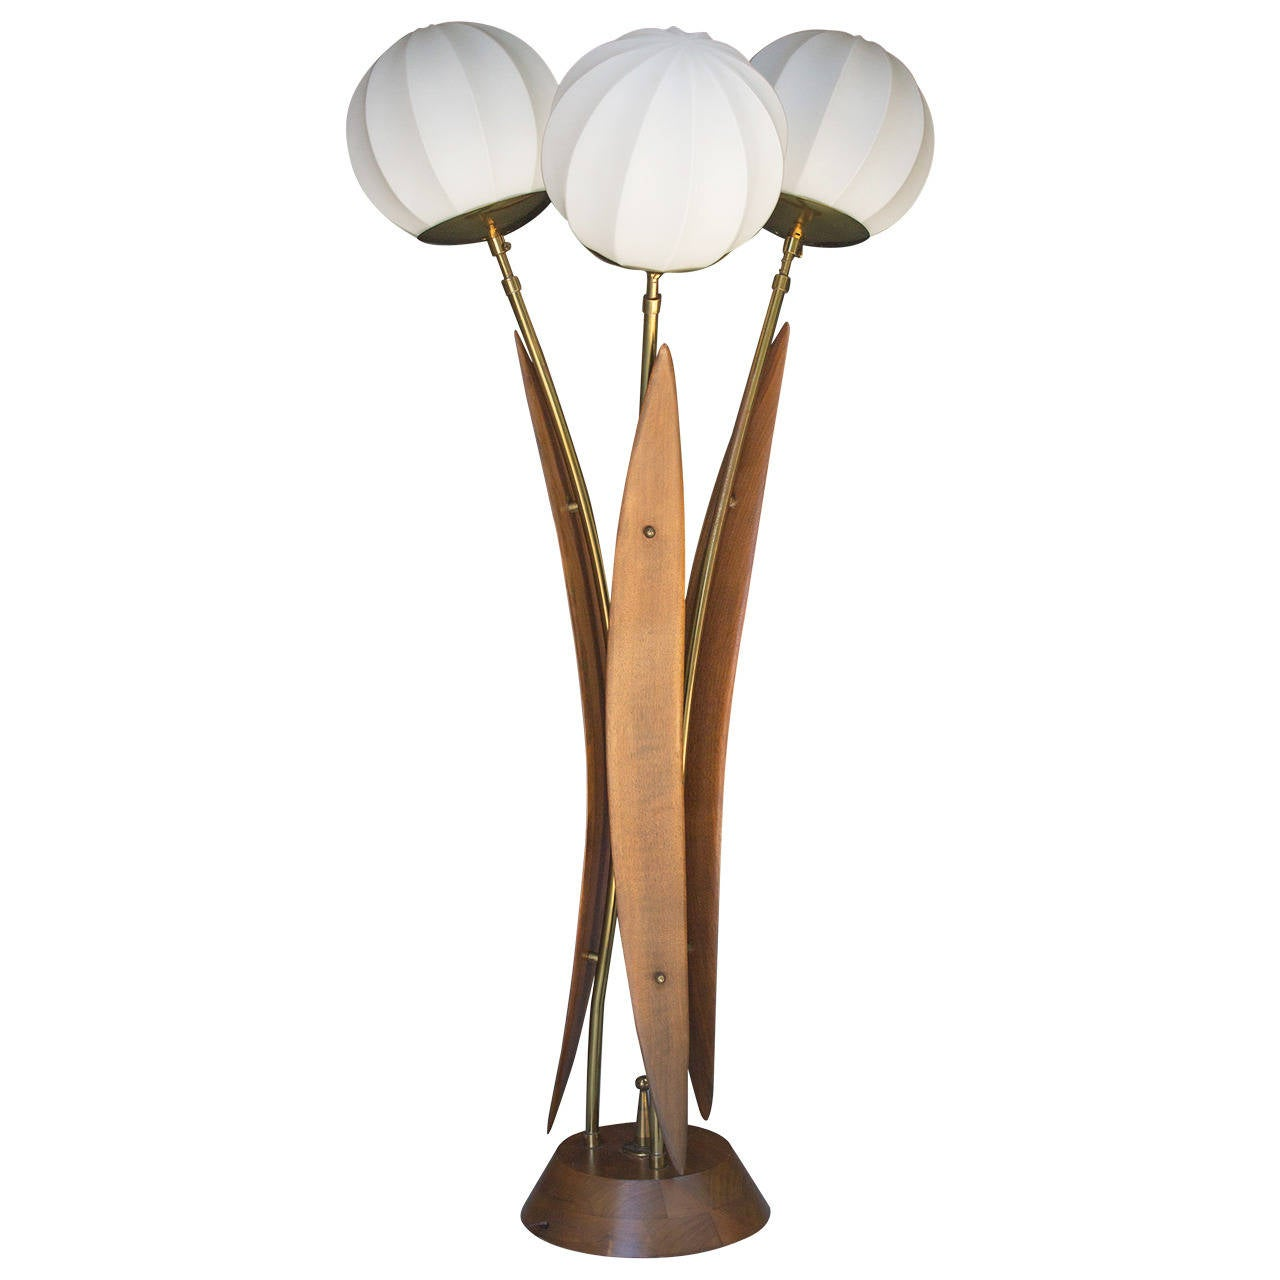 1950s teak tall table lamp at 1stdibs for F k a table lamp